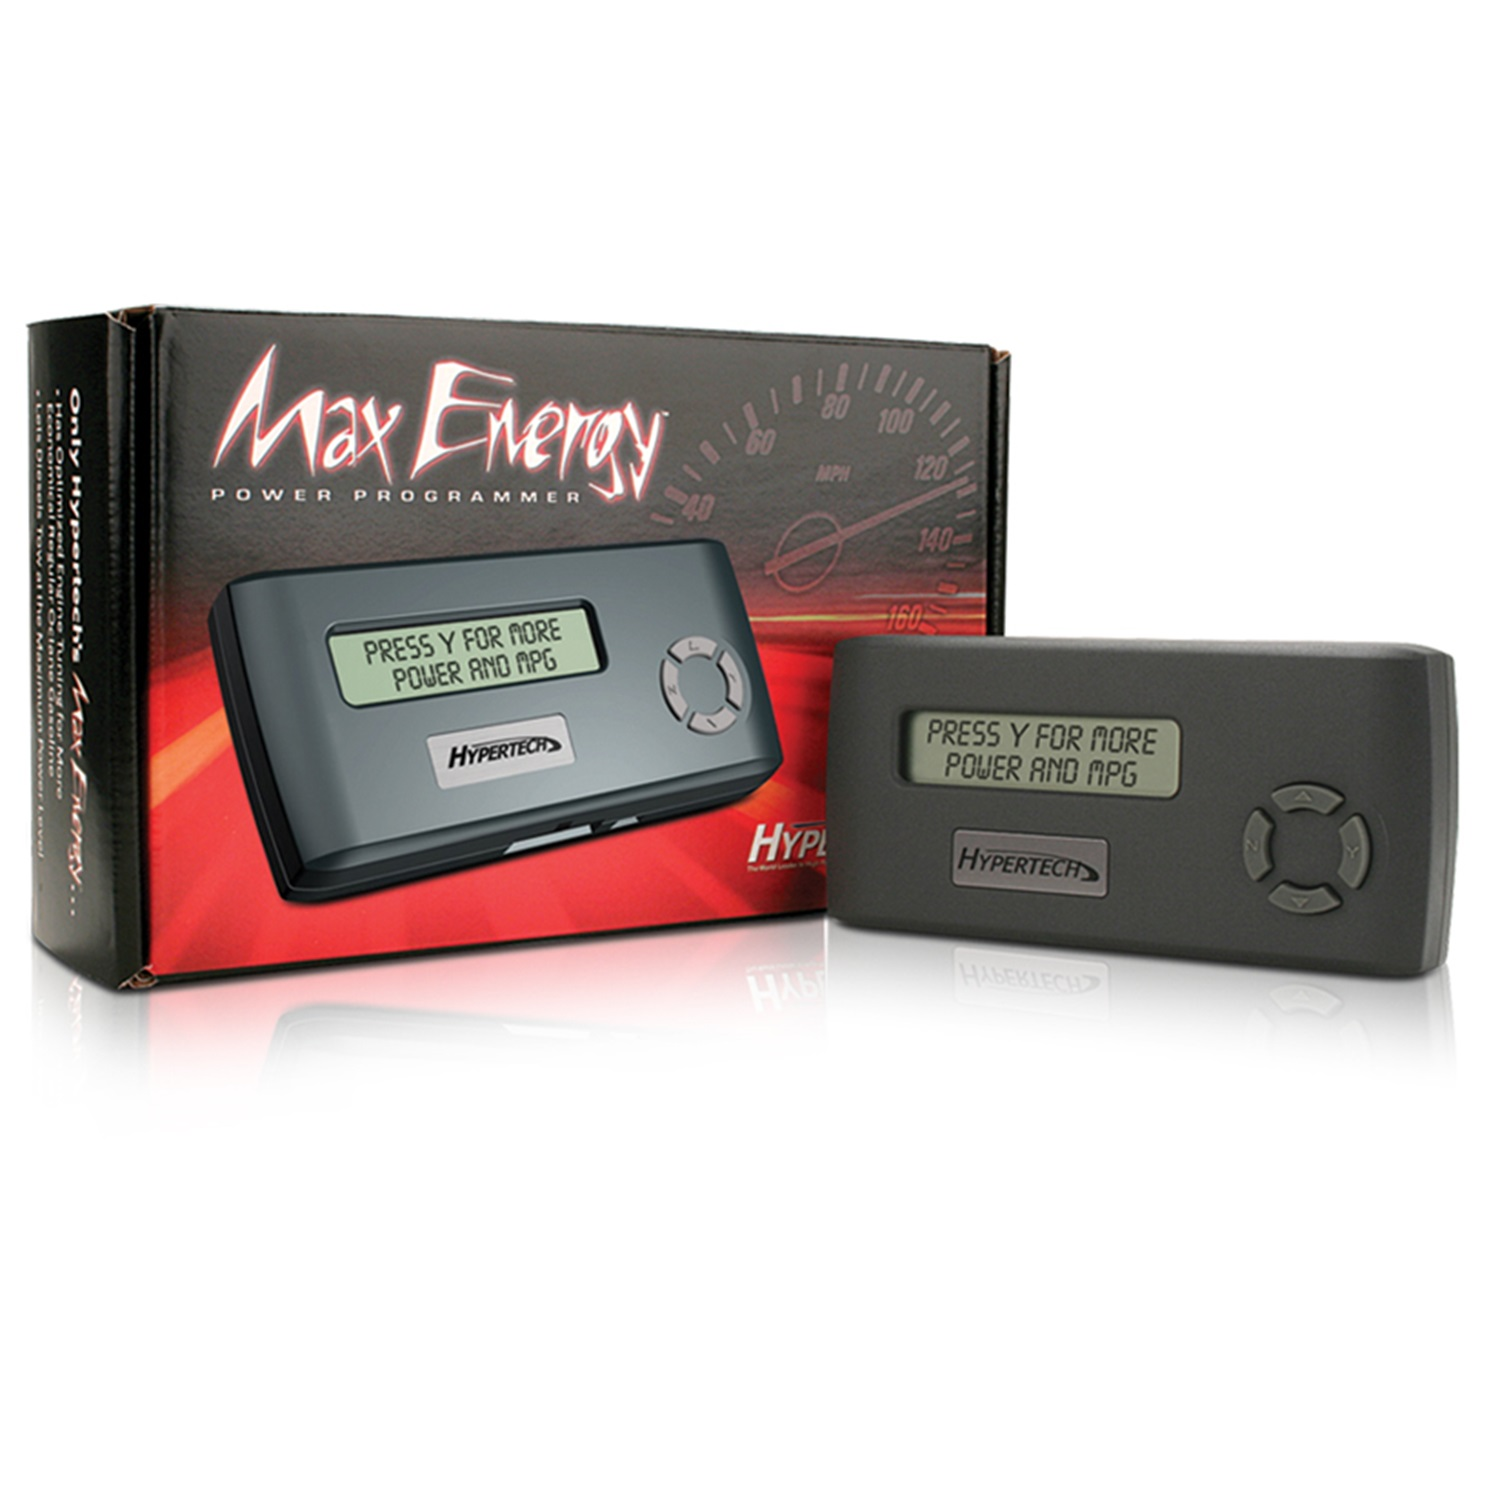 Hypertech 32500 Max Energy Power Programmer at Sears.com